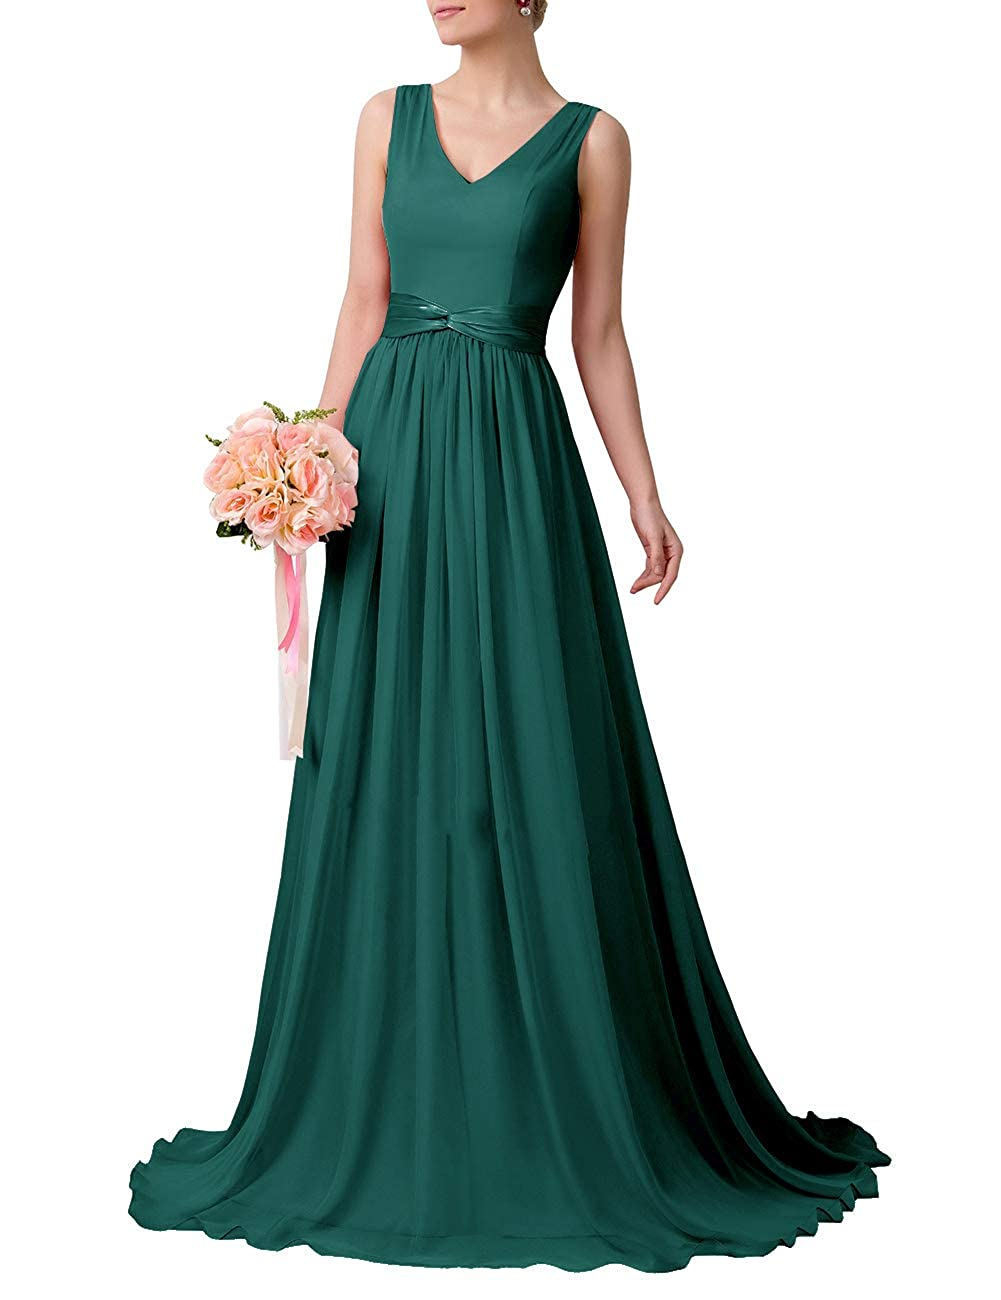 Uther V-Neck Floor-Length Bridesmaid Dress with Sash Chiffon Wedding Party Gowns